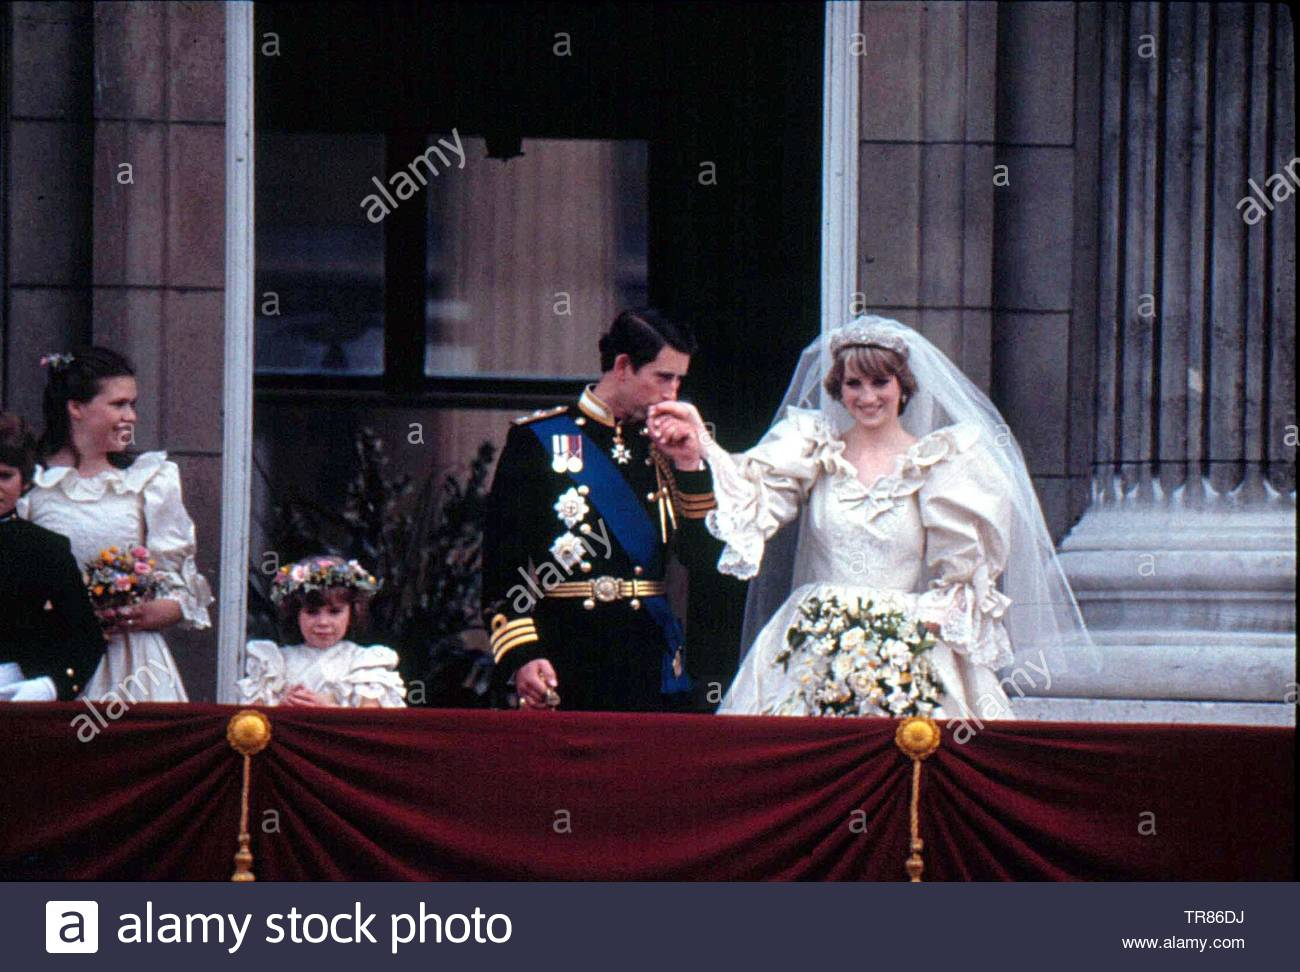 British Crown Issued to Celebrate  Prince Charles and Diana Wedding 1981